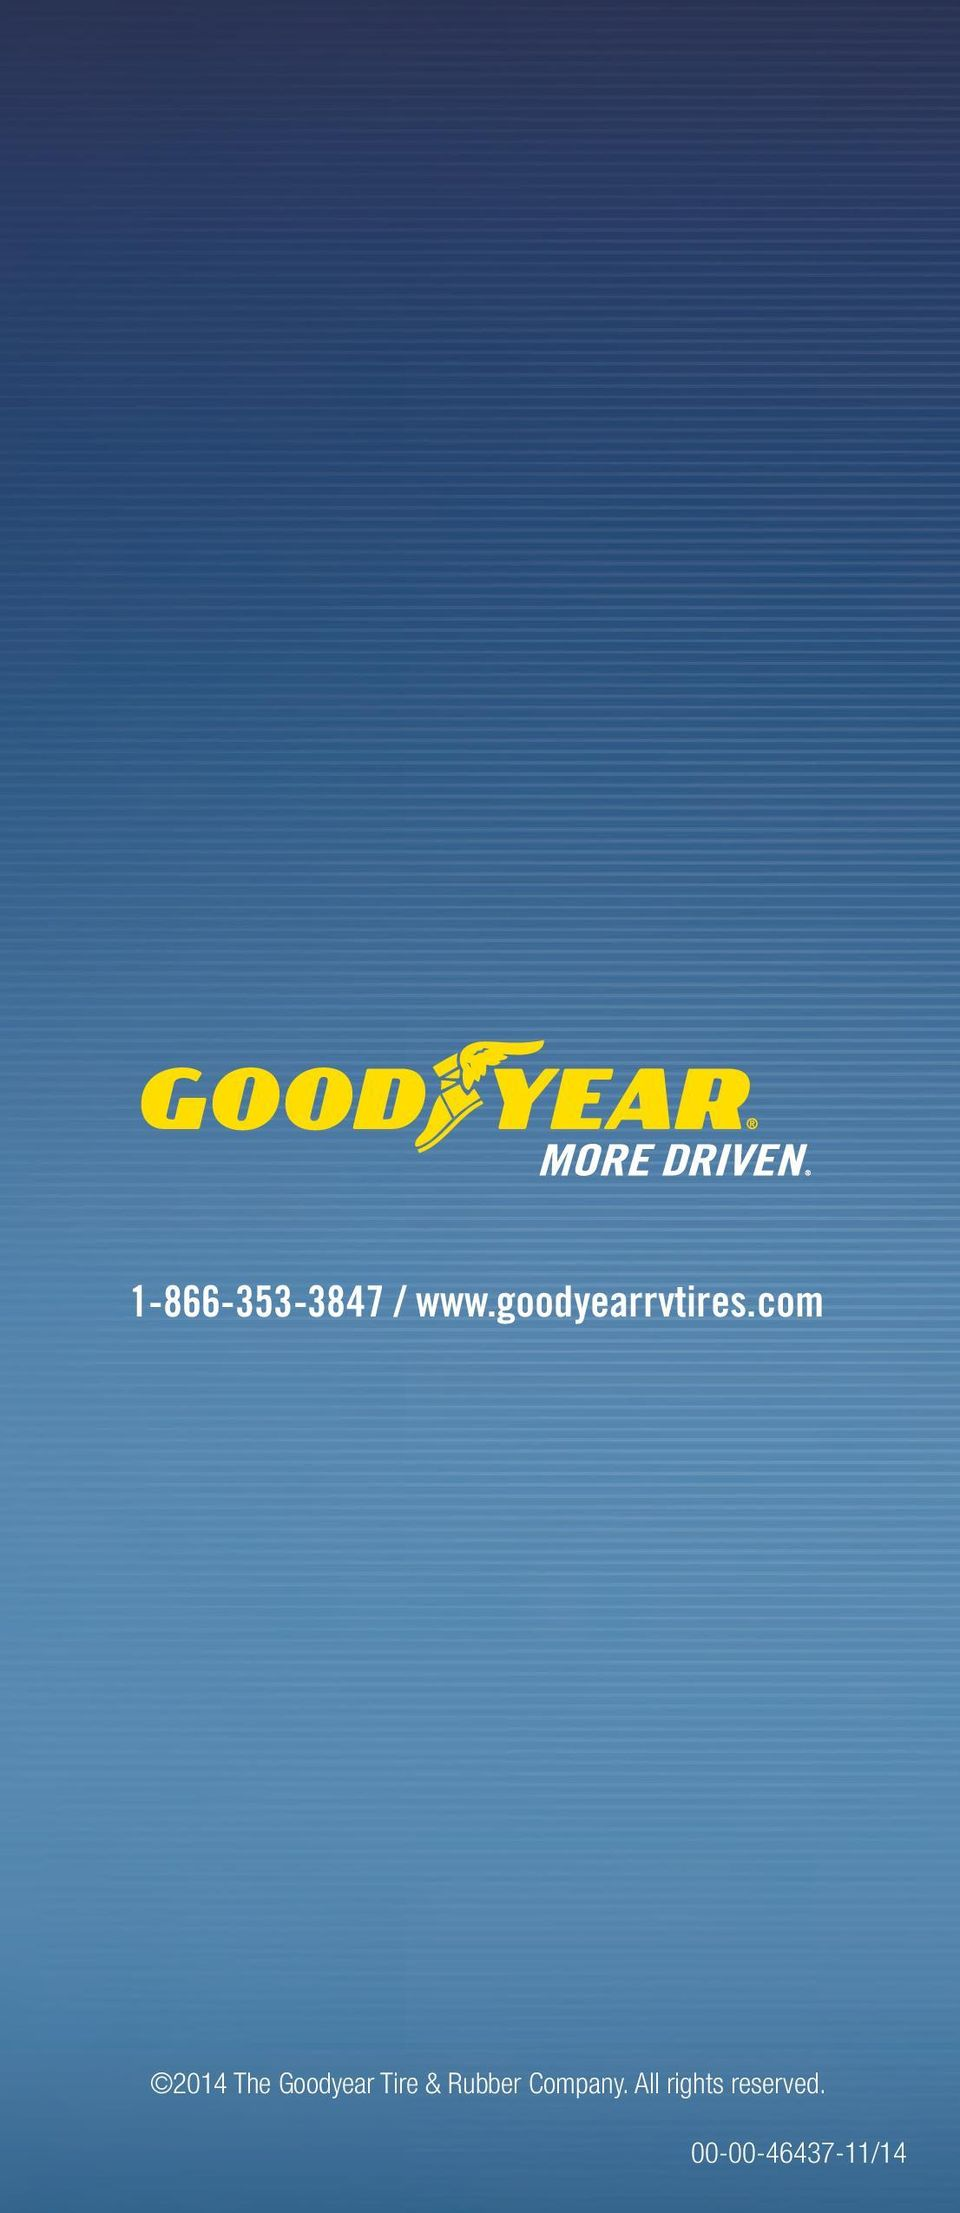 com 2014 The Goodyear Tire &